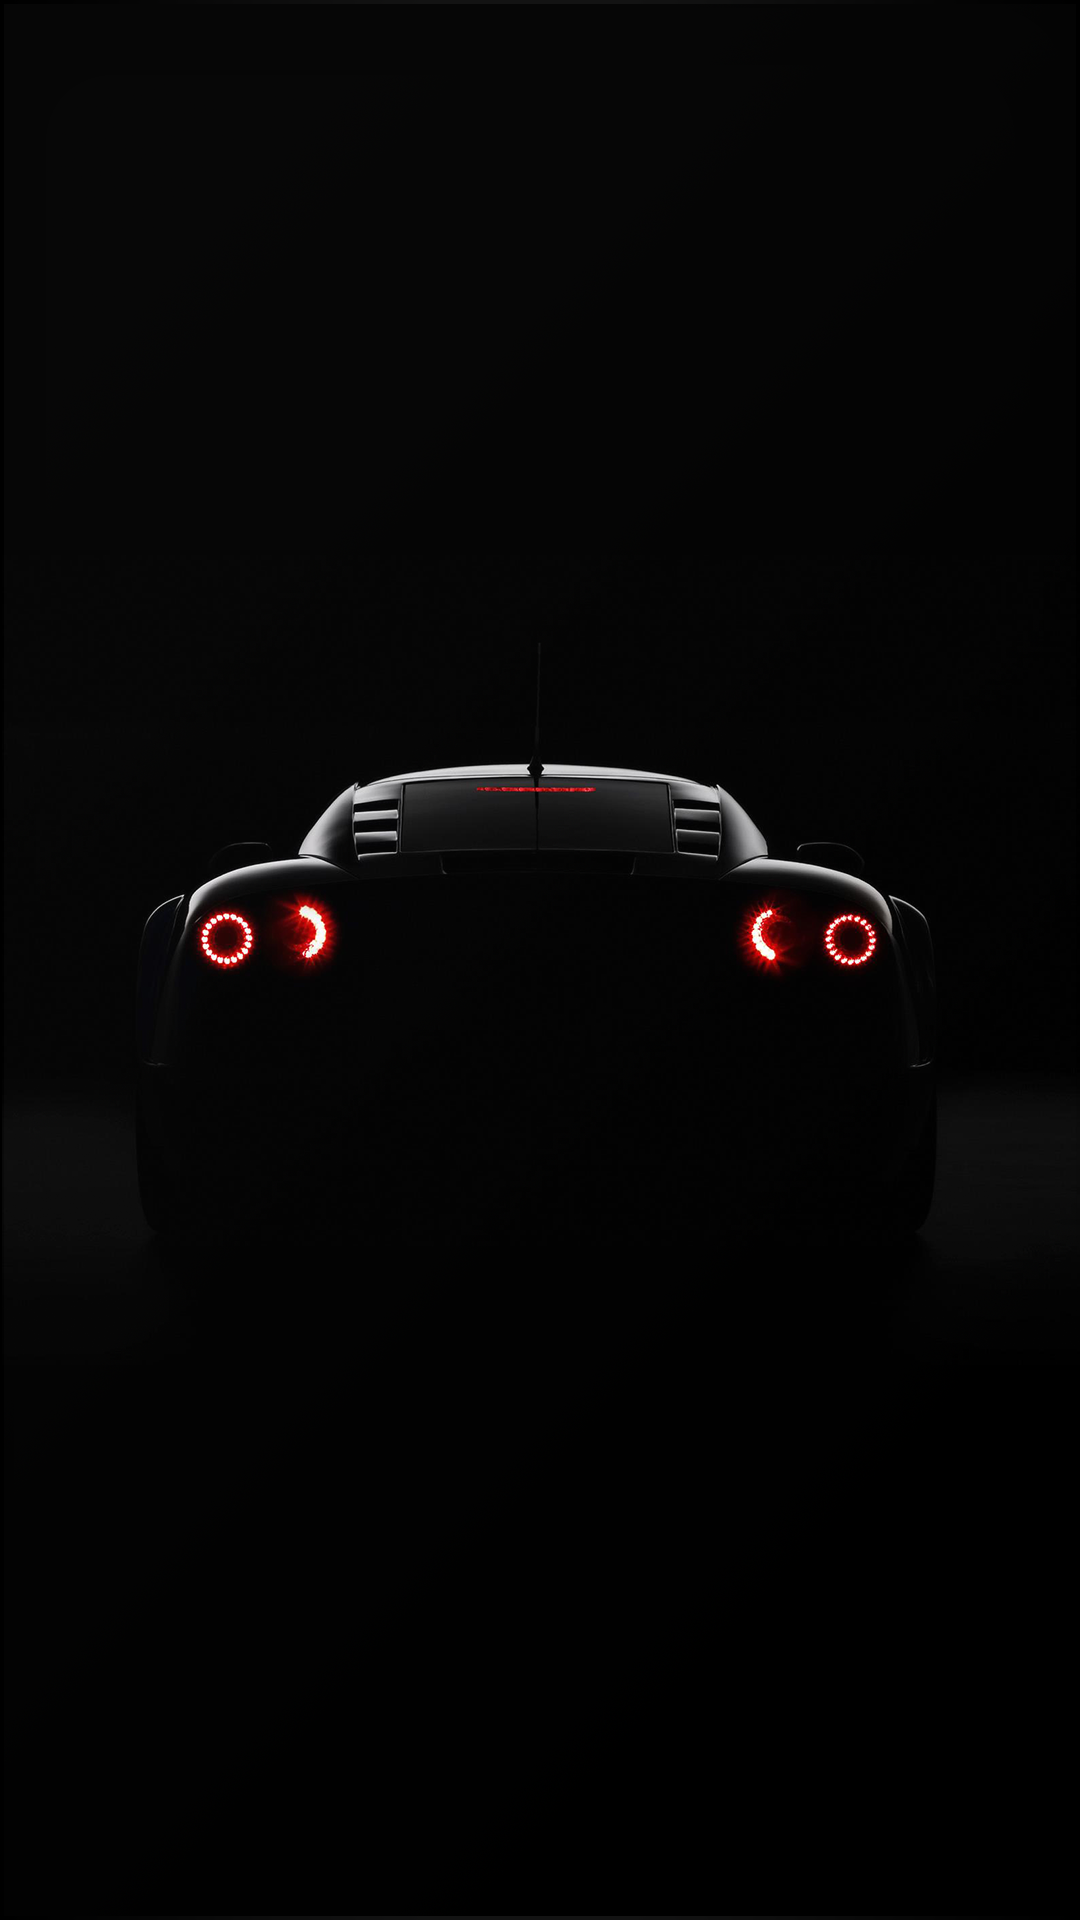 Download our hd racing black wallpaper for android phones - Black wallpaper for android download ...